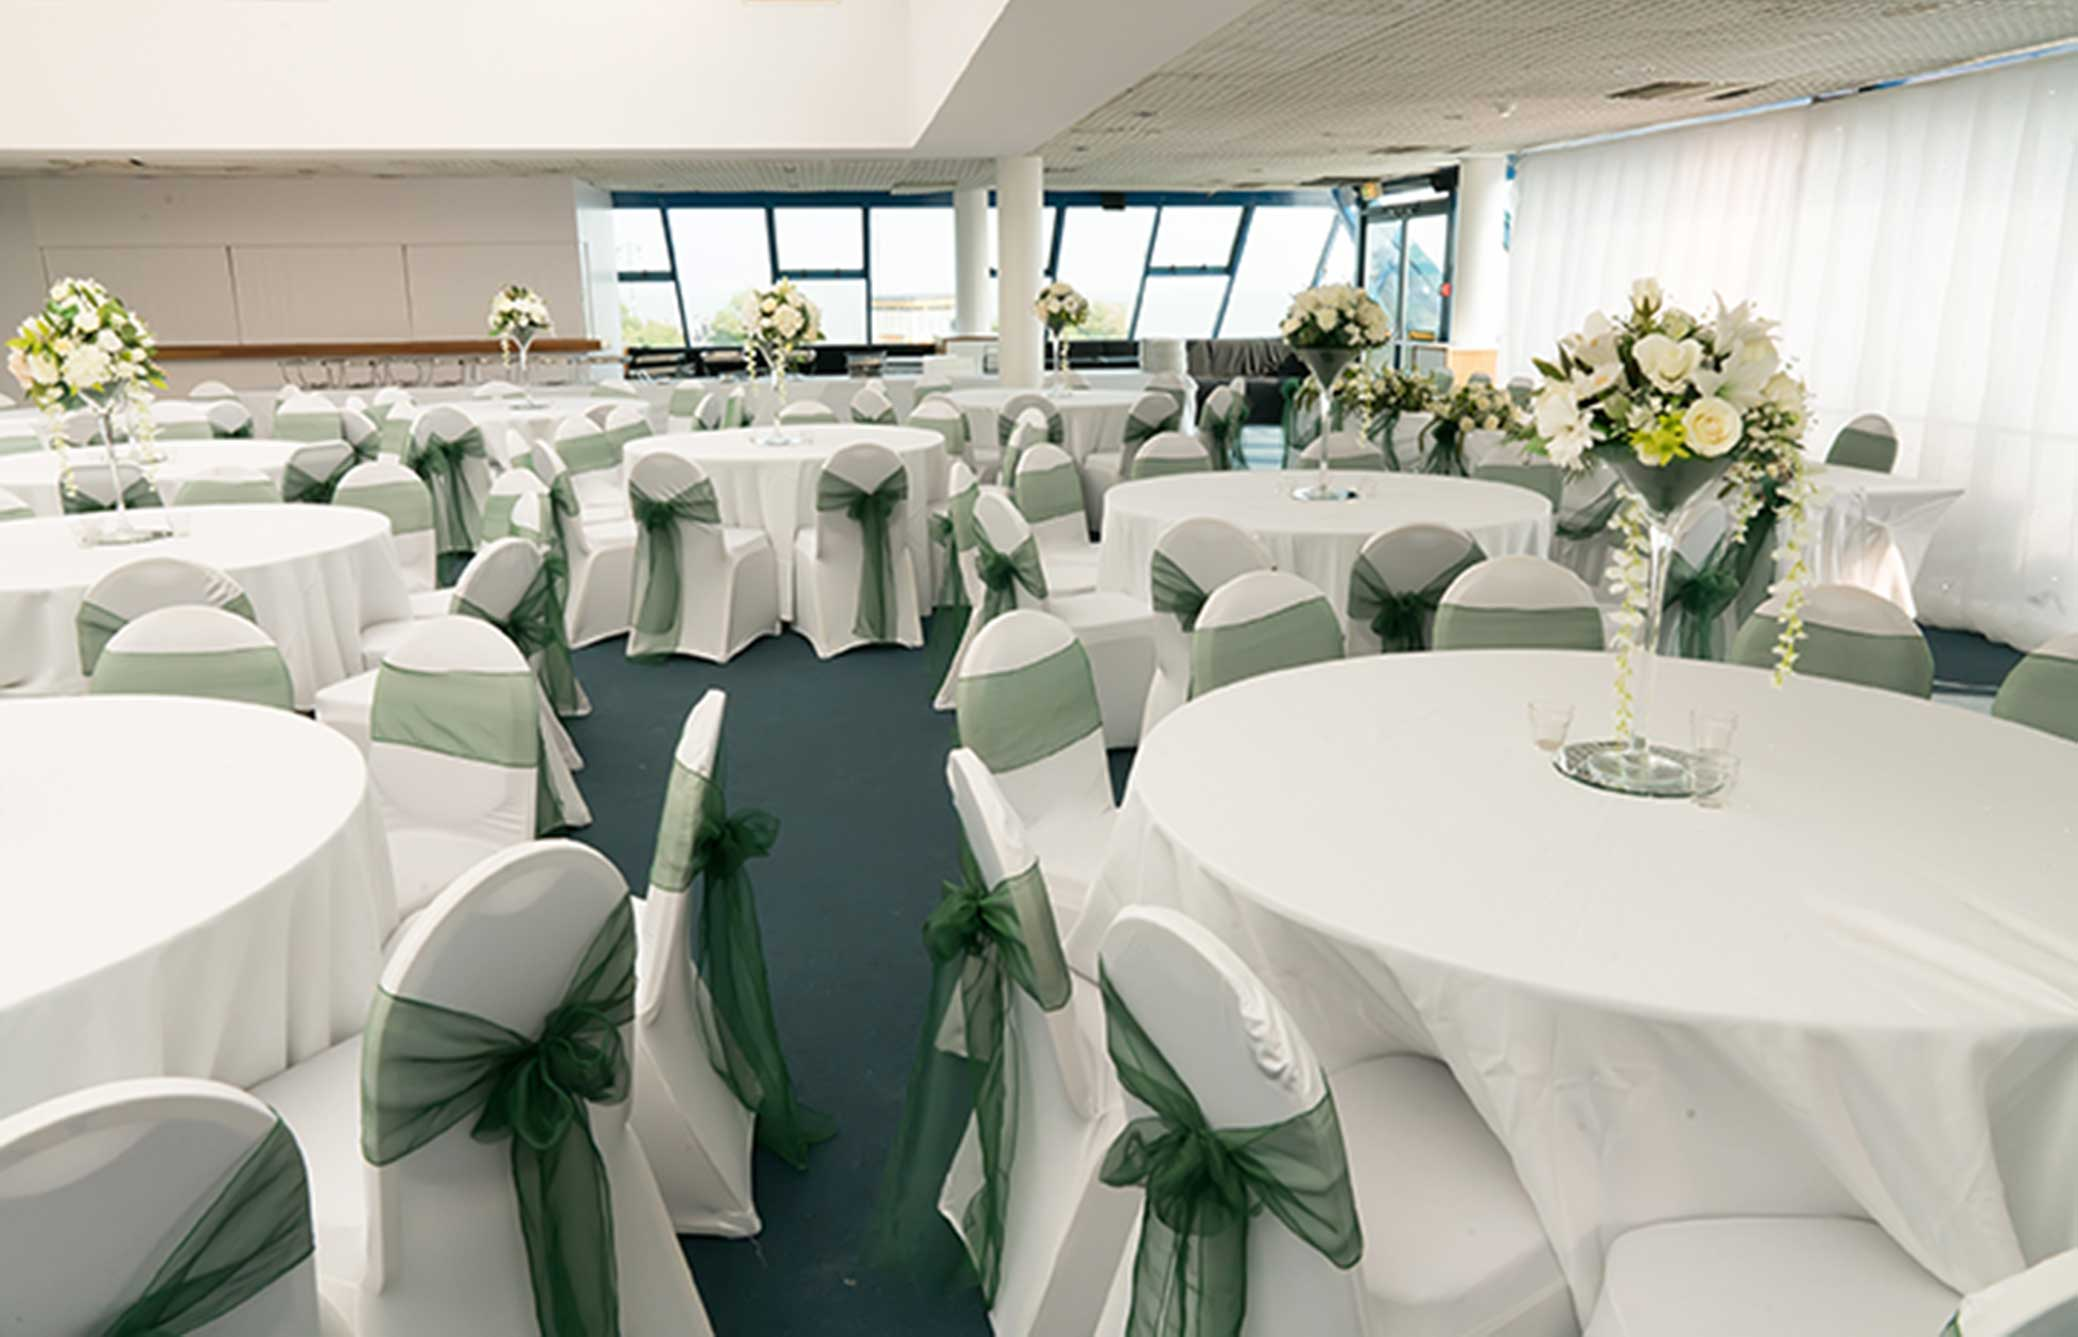 Weddings at pyramids bh live active for Pyramid swimming pool portsmouth